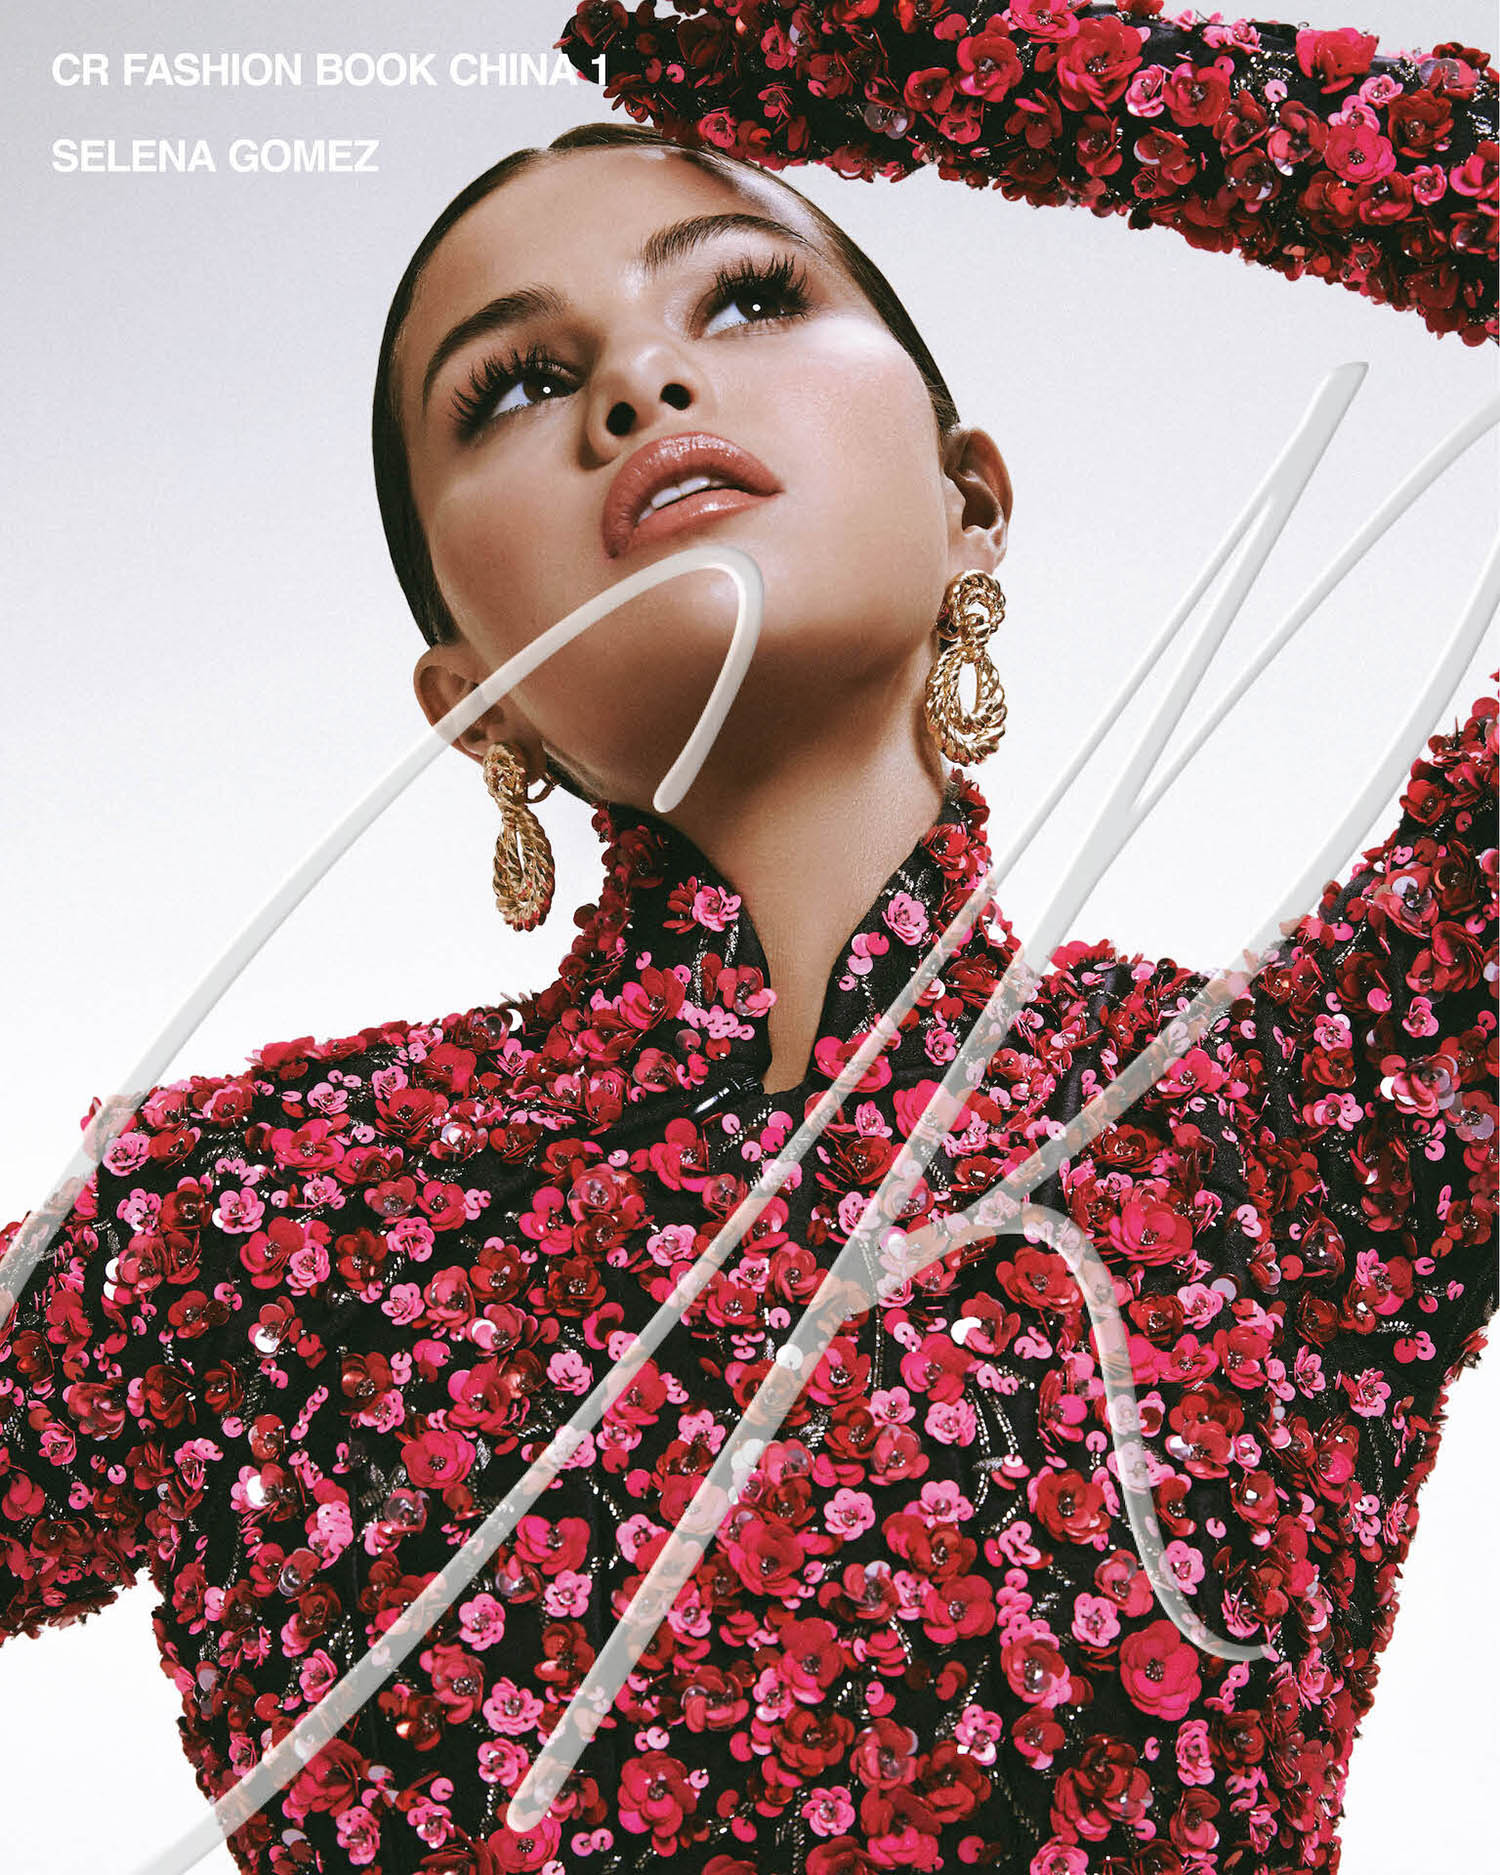 Selena Gomez covers CR Fashion Book China Issue 01 by Adrienne Raquel